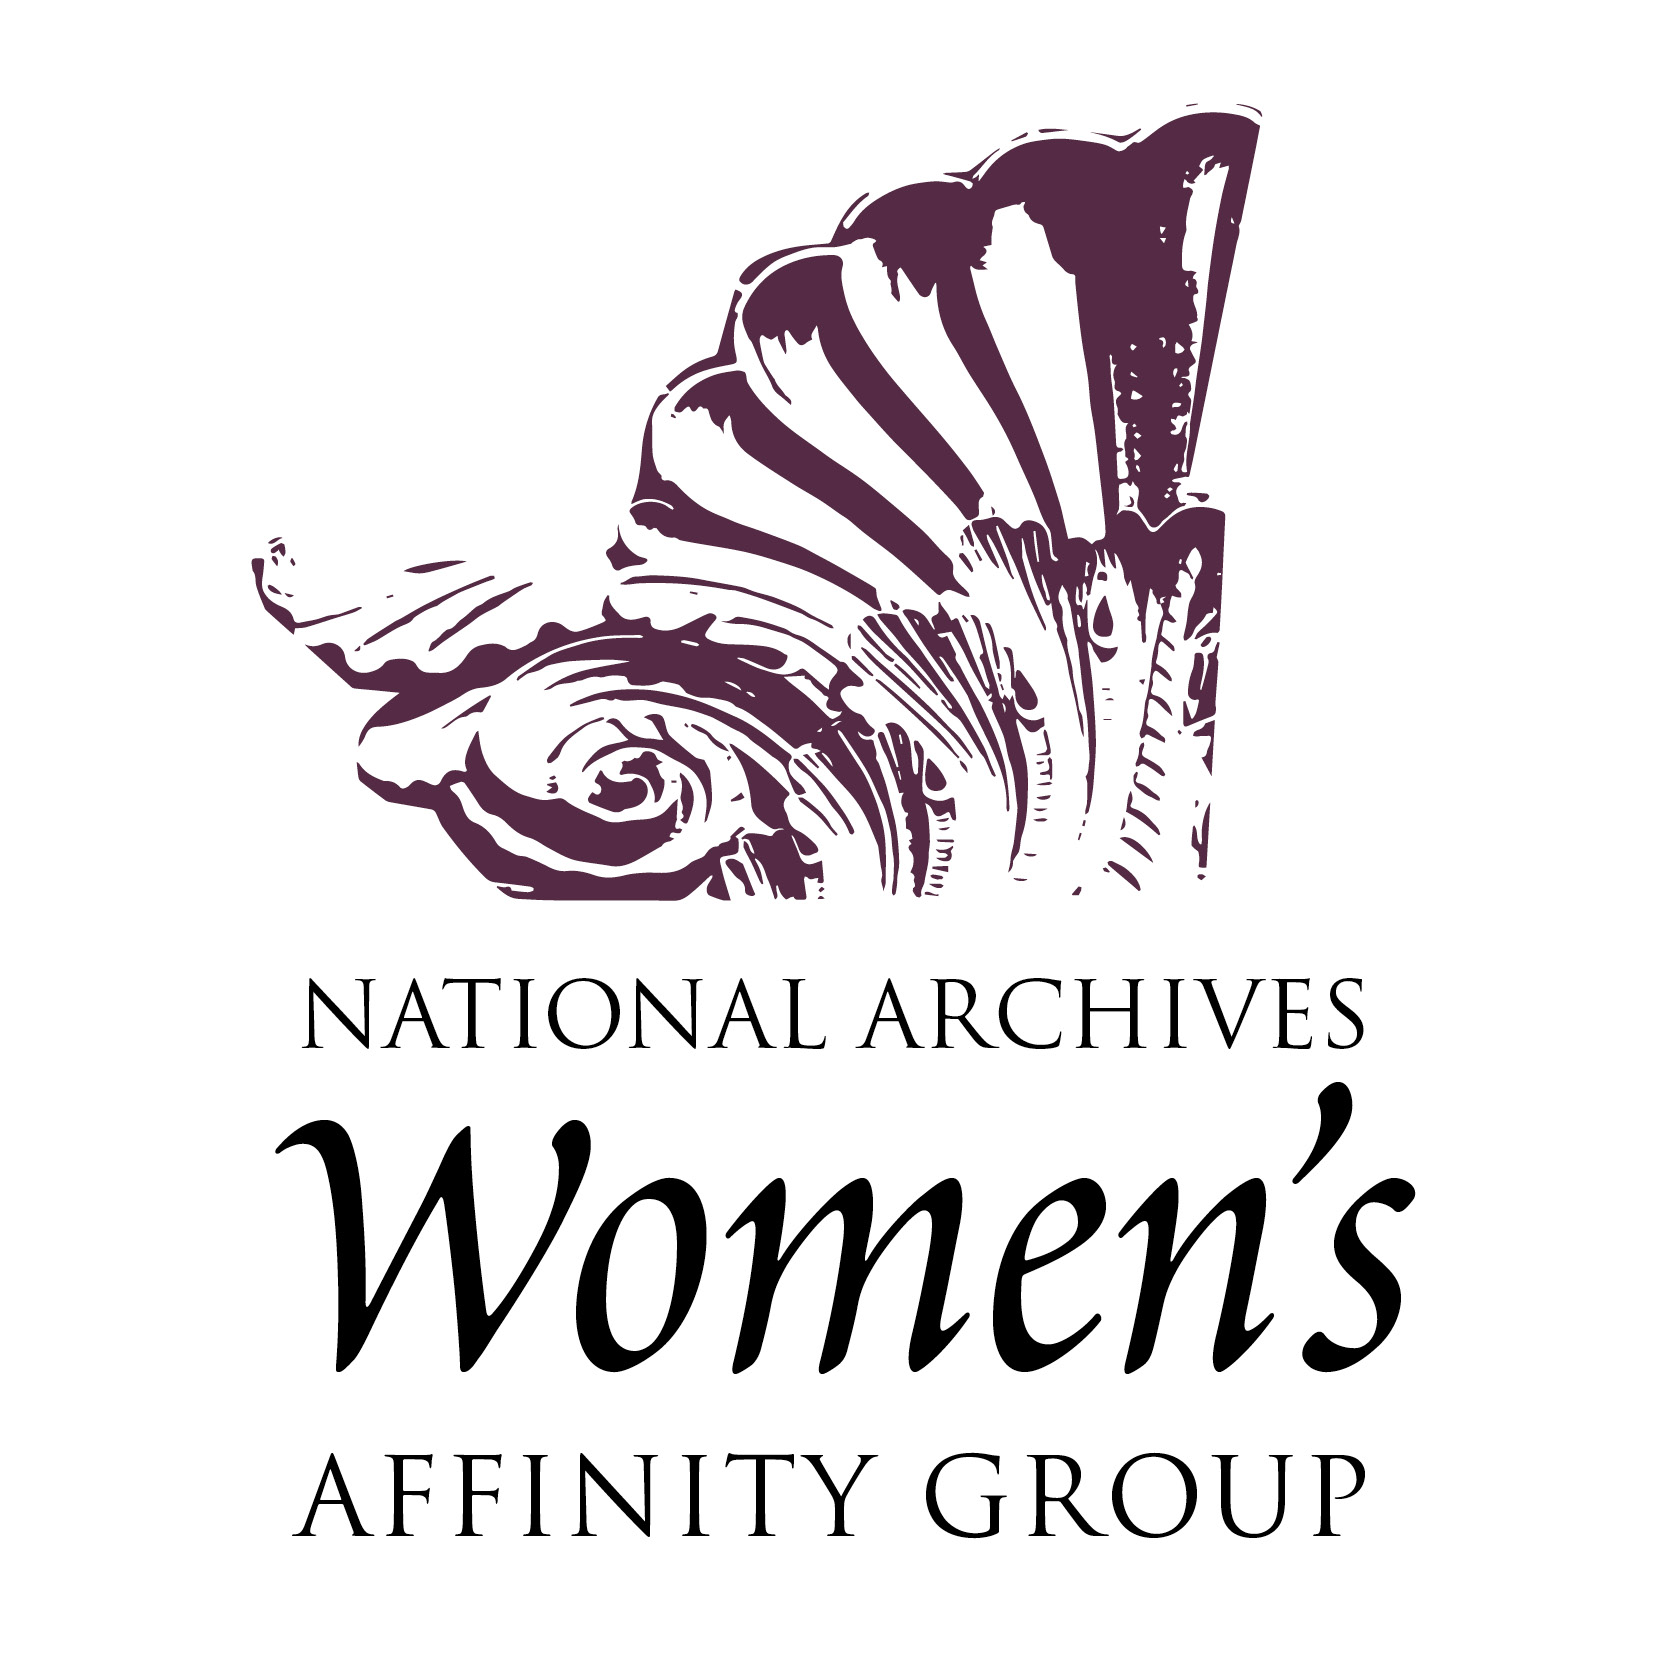 National Archives Women's Affinity Group logo